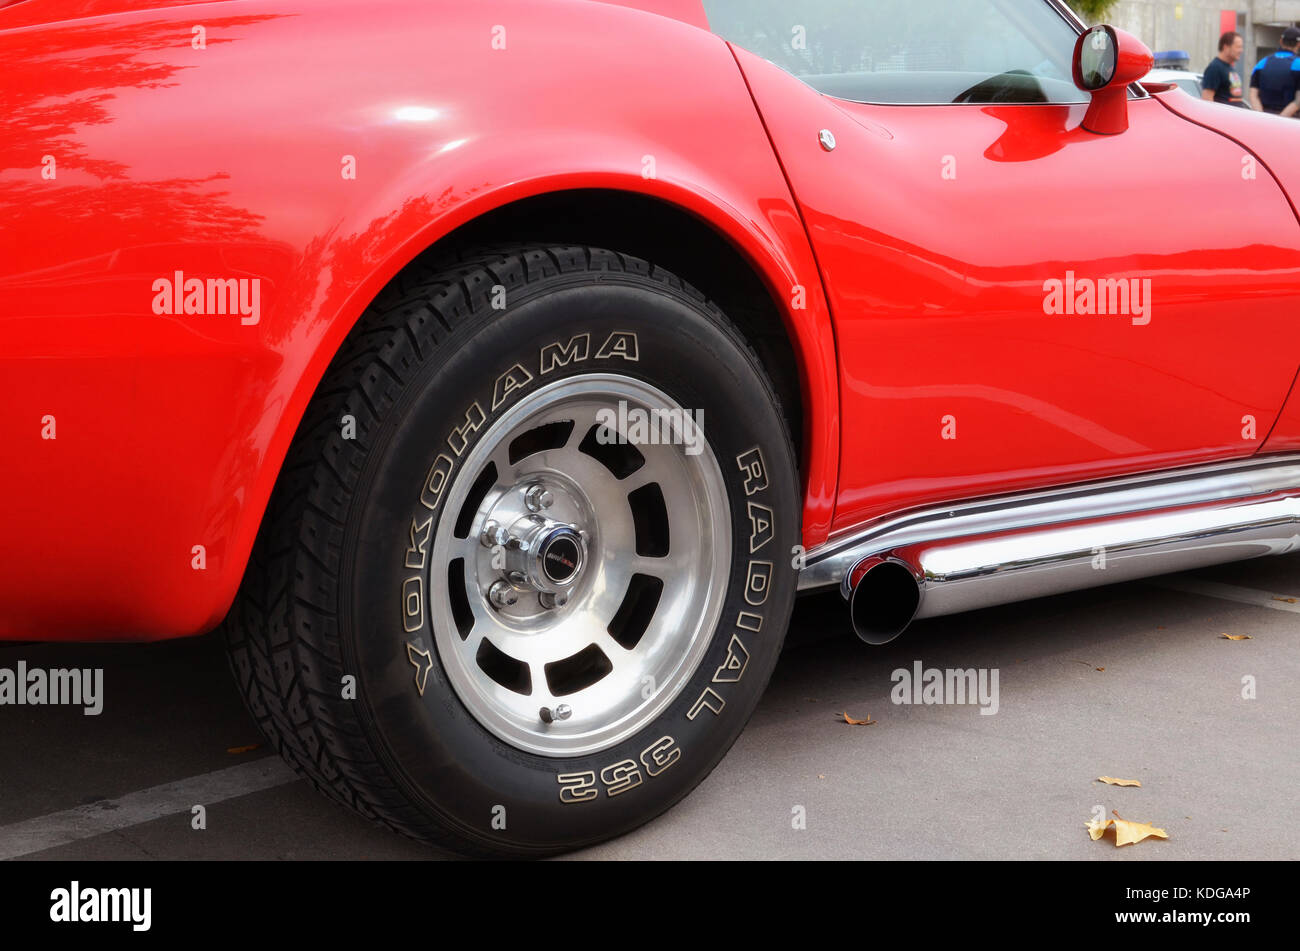 meeting of classic american cars rear wheel of red chevrolet corvette c3 stingray made